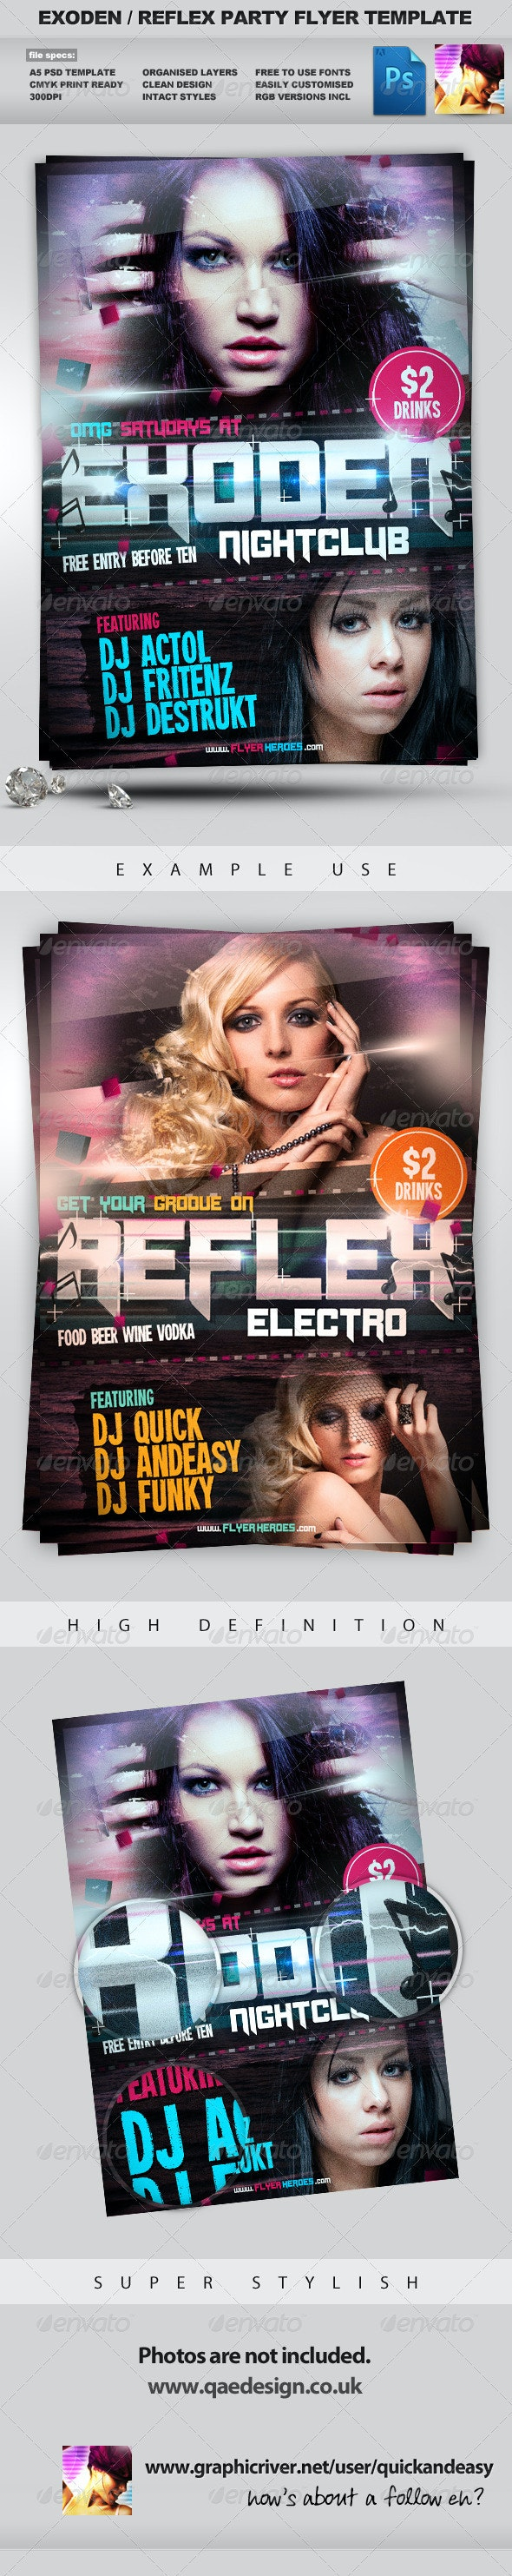 Exoden Nightclub Party Flyer Template - Clubs & Parties Events